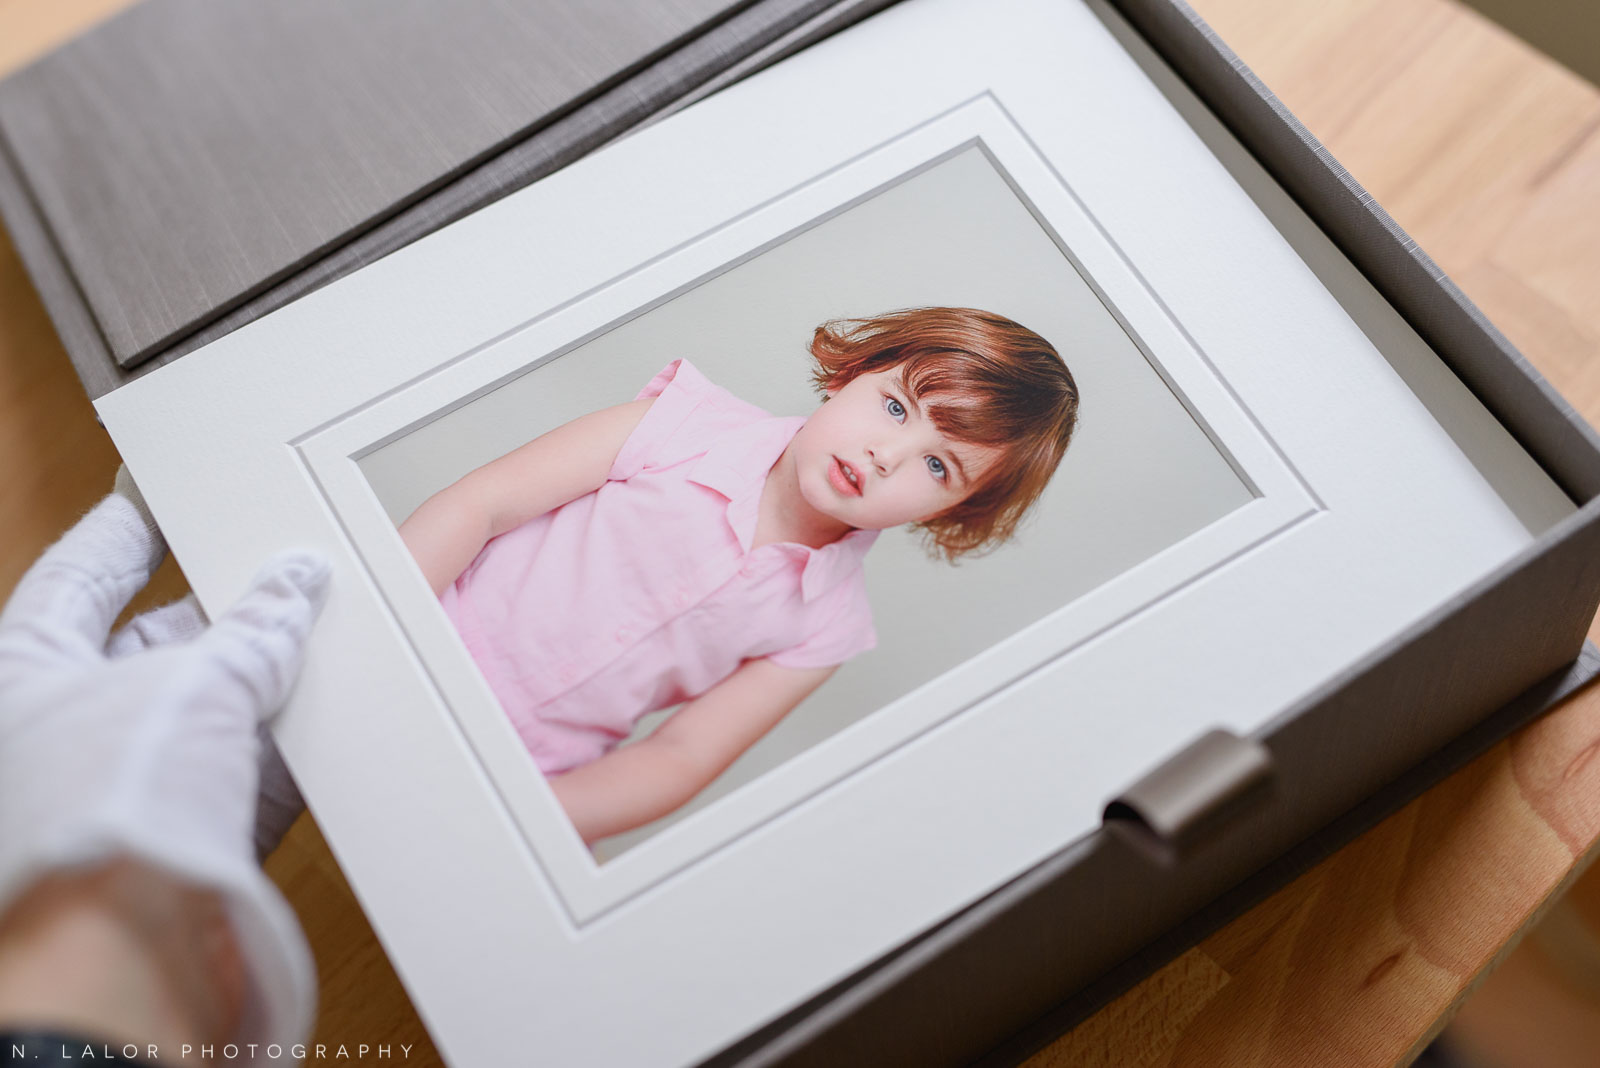 Image of a heirloom print and presentation box.Studio portrait by N. Lalor Photography in Greenwich Connecticut.